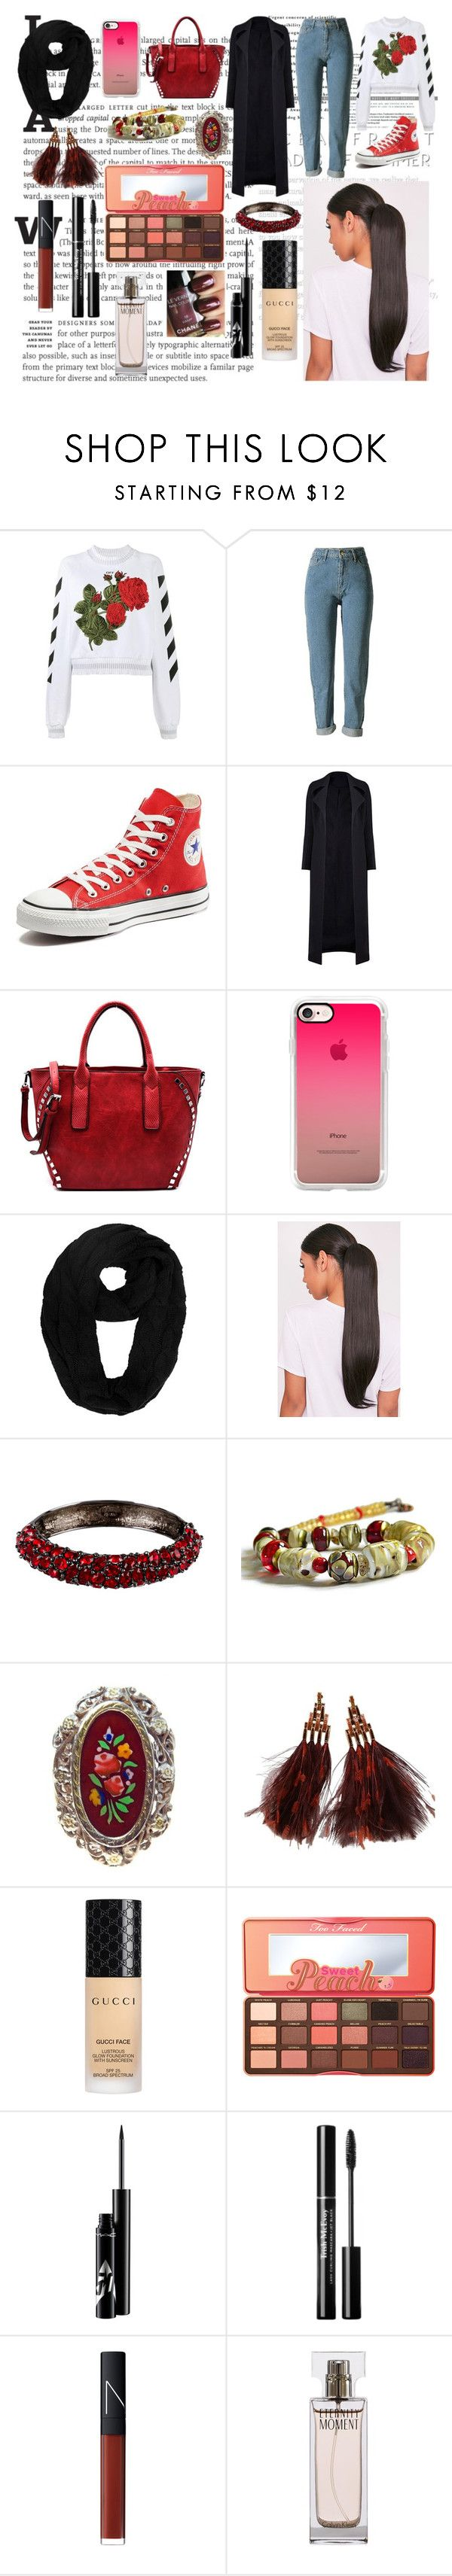 """""""Tears."""" by it-srabina ❤ liked on Polyvore featuring Off-White, Converse, Casetify, Kenneth Jay Lane, Louis Vuitton, Gucci, Too Faced Cosmetics, NARS Cosmetics, Burberry and Calvin Klein"""